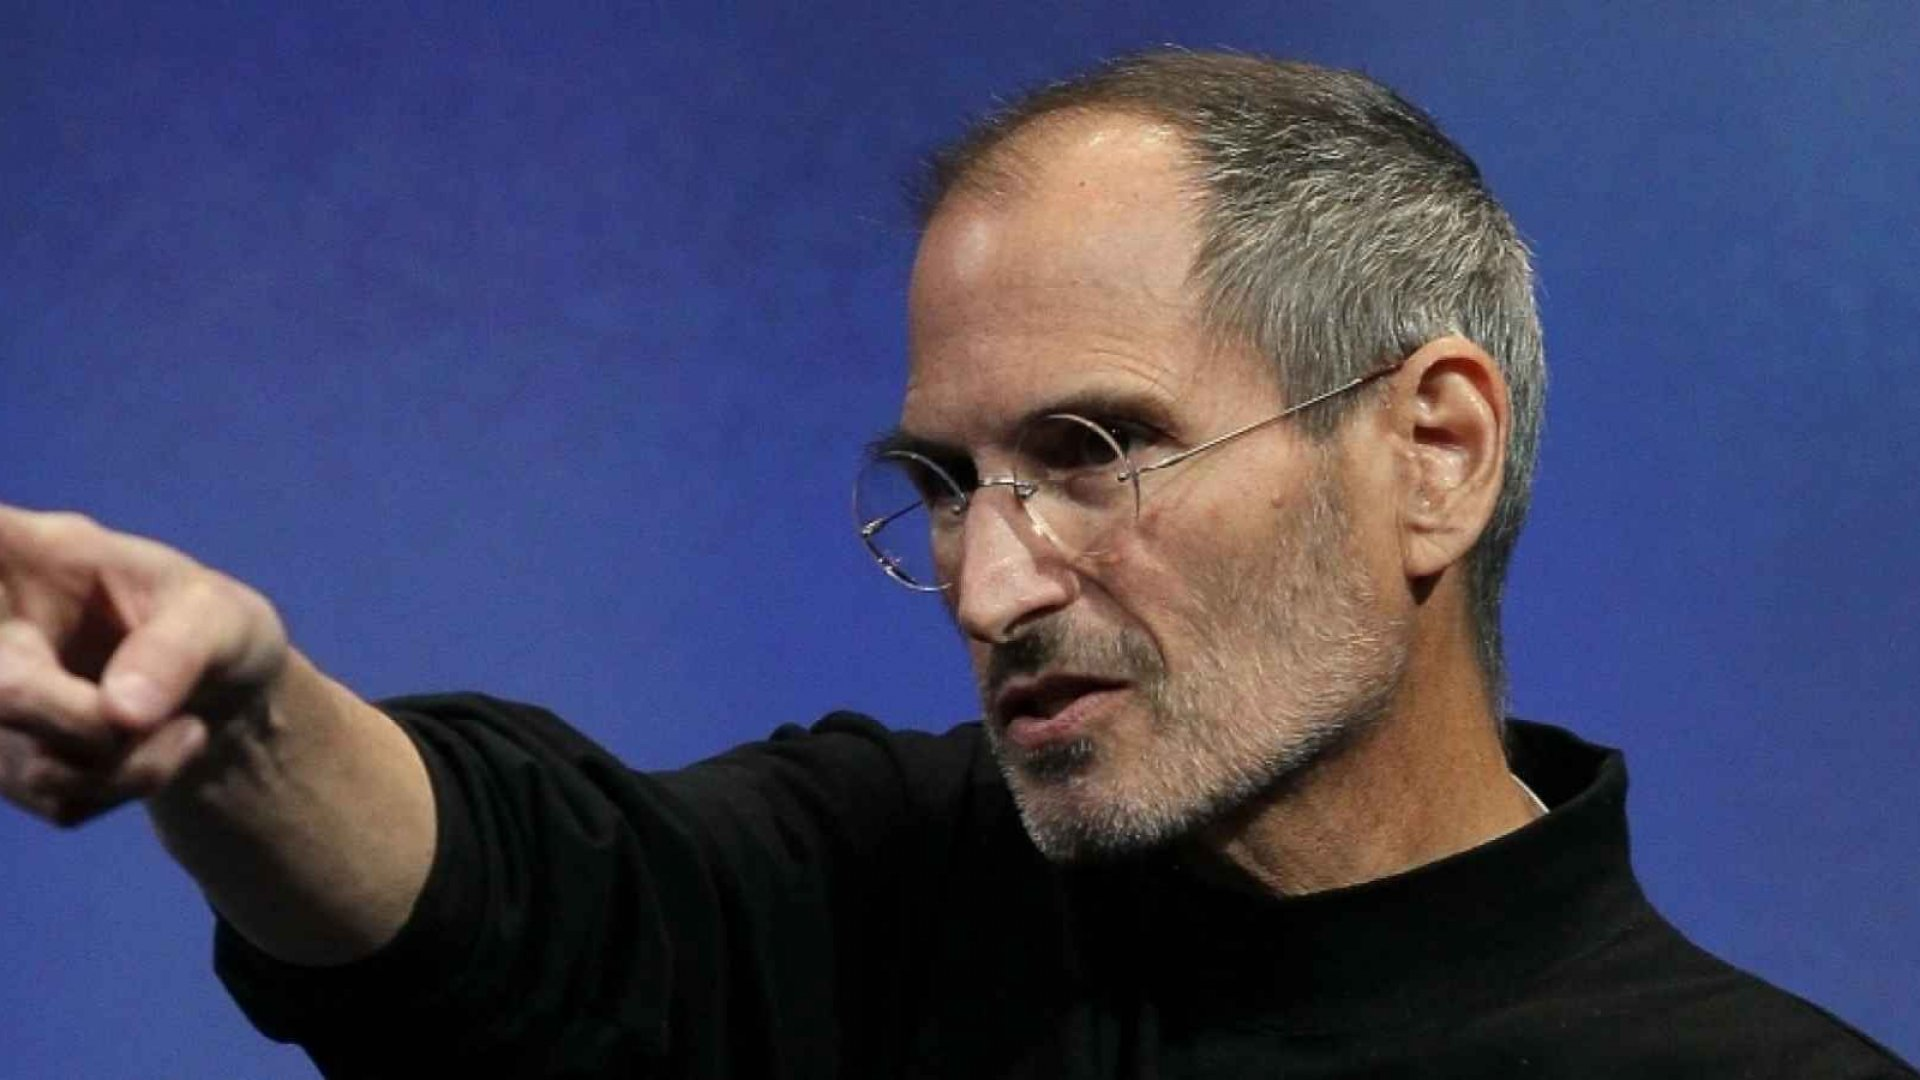 From Steve Jobs to David Bowie: 4 Ways to Reinvent Yourself